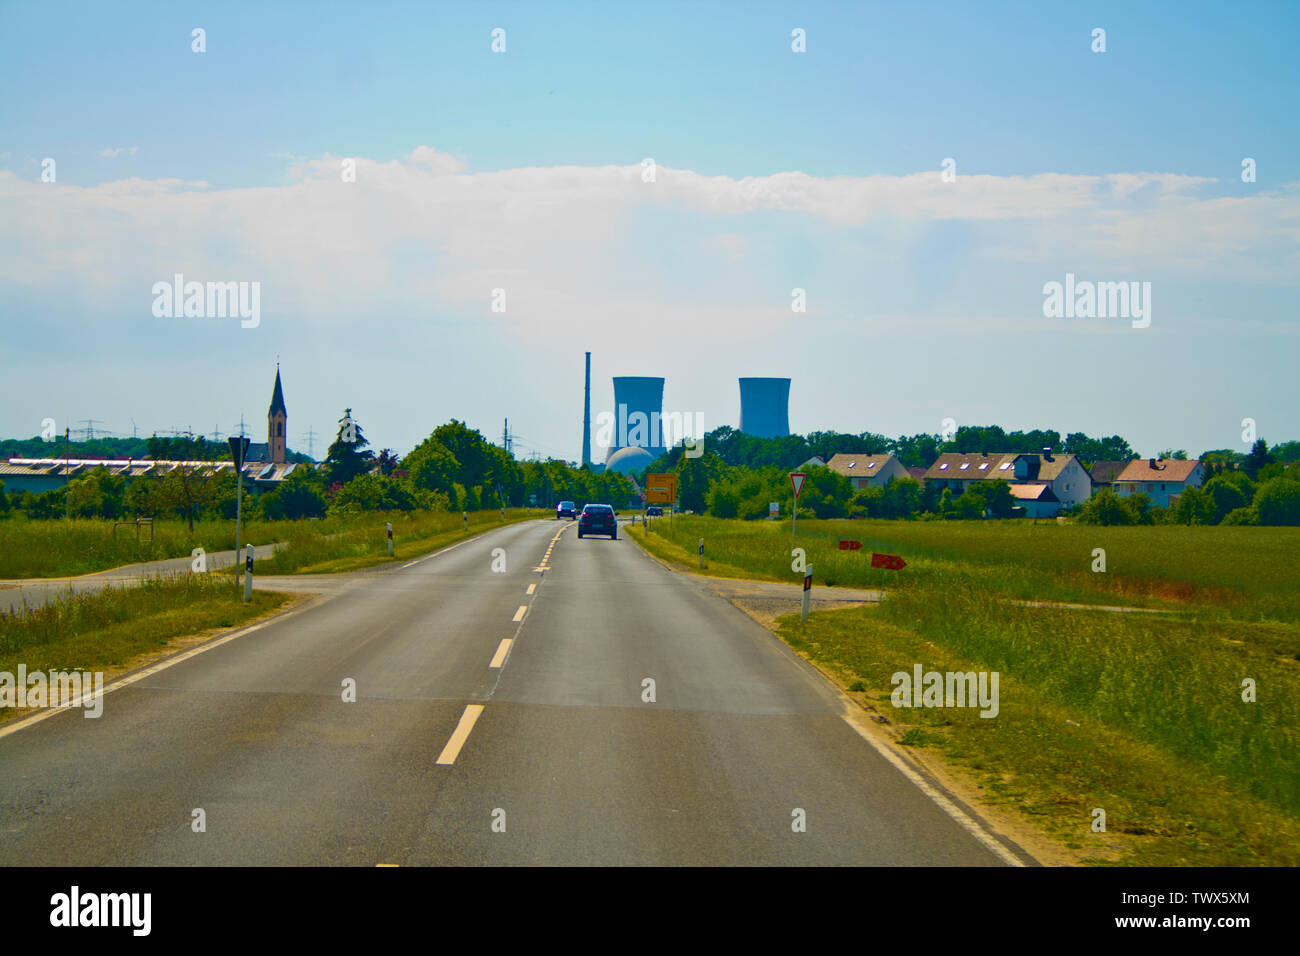 The nuclear power plant in Bavaria - Stock Image